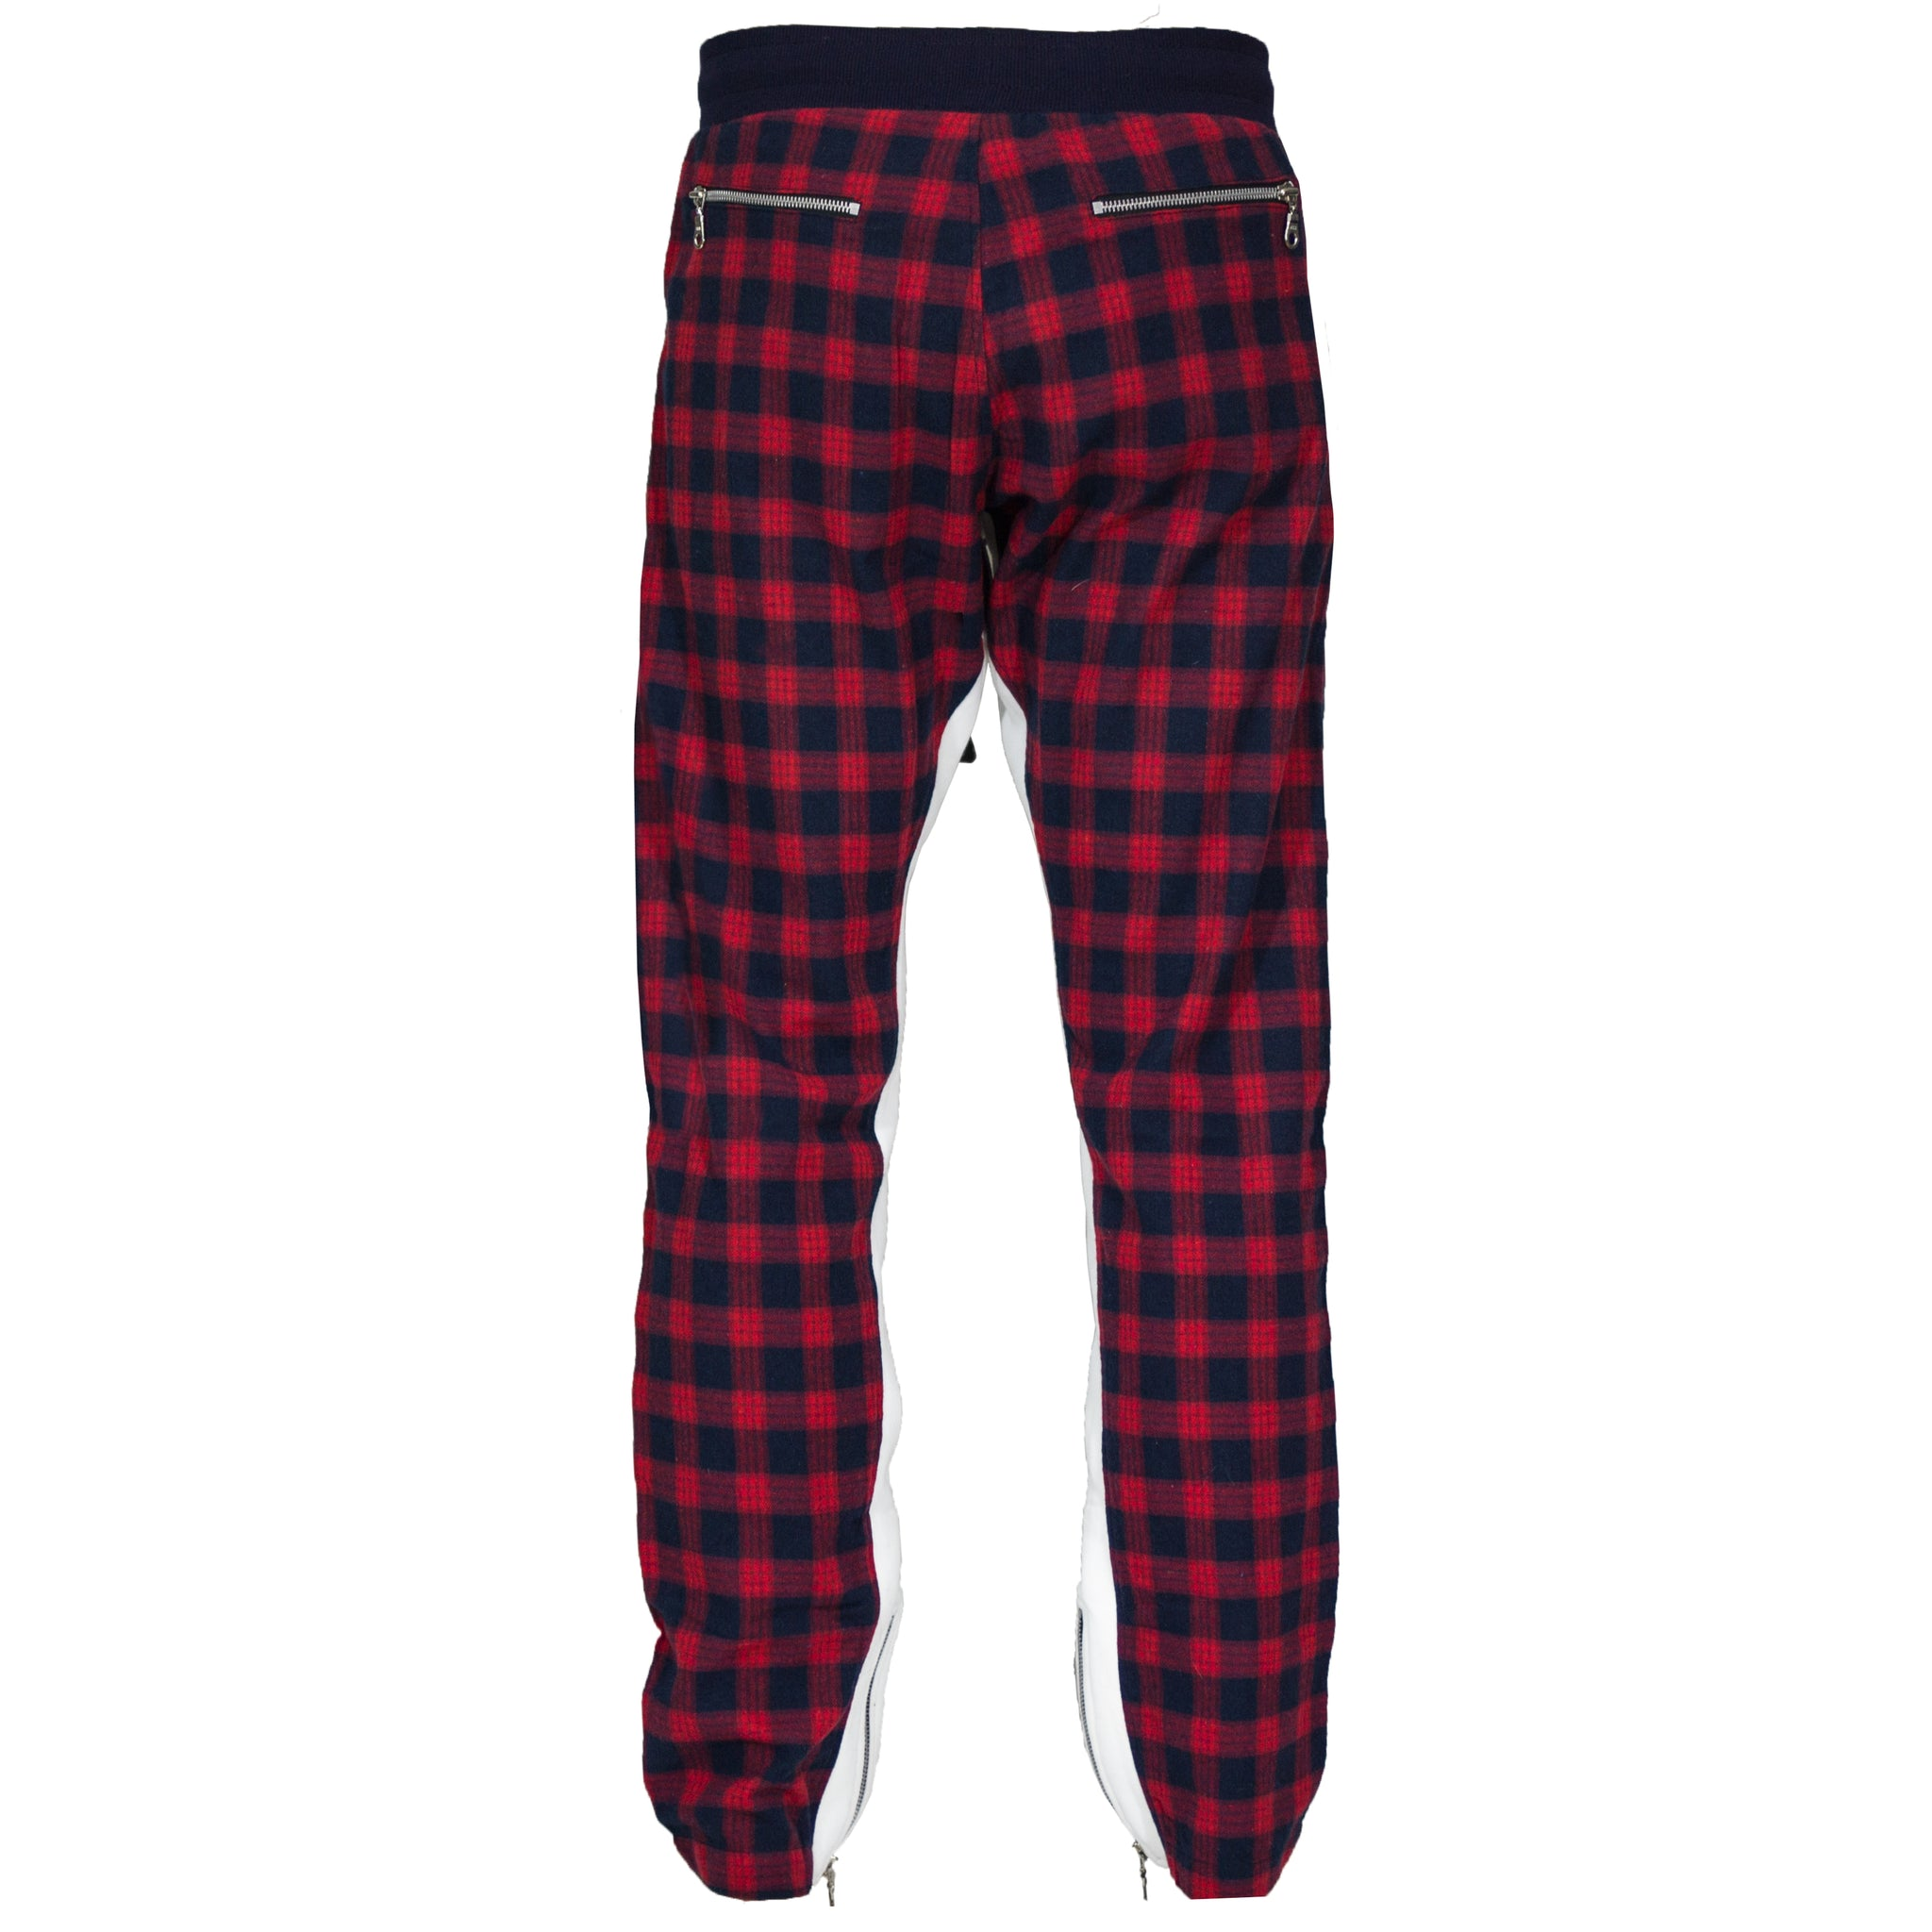 Plaid Zip Pants : Red/Navy